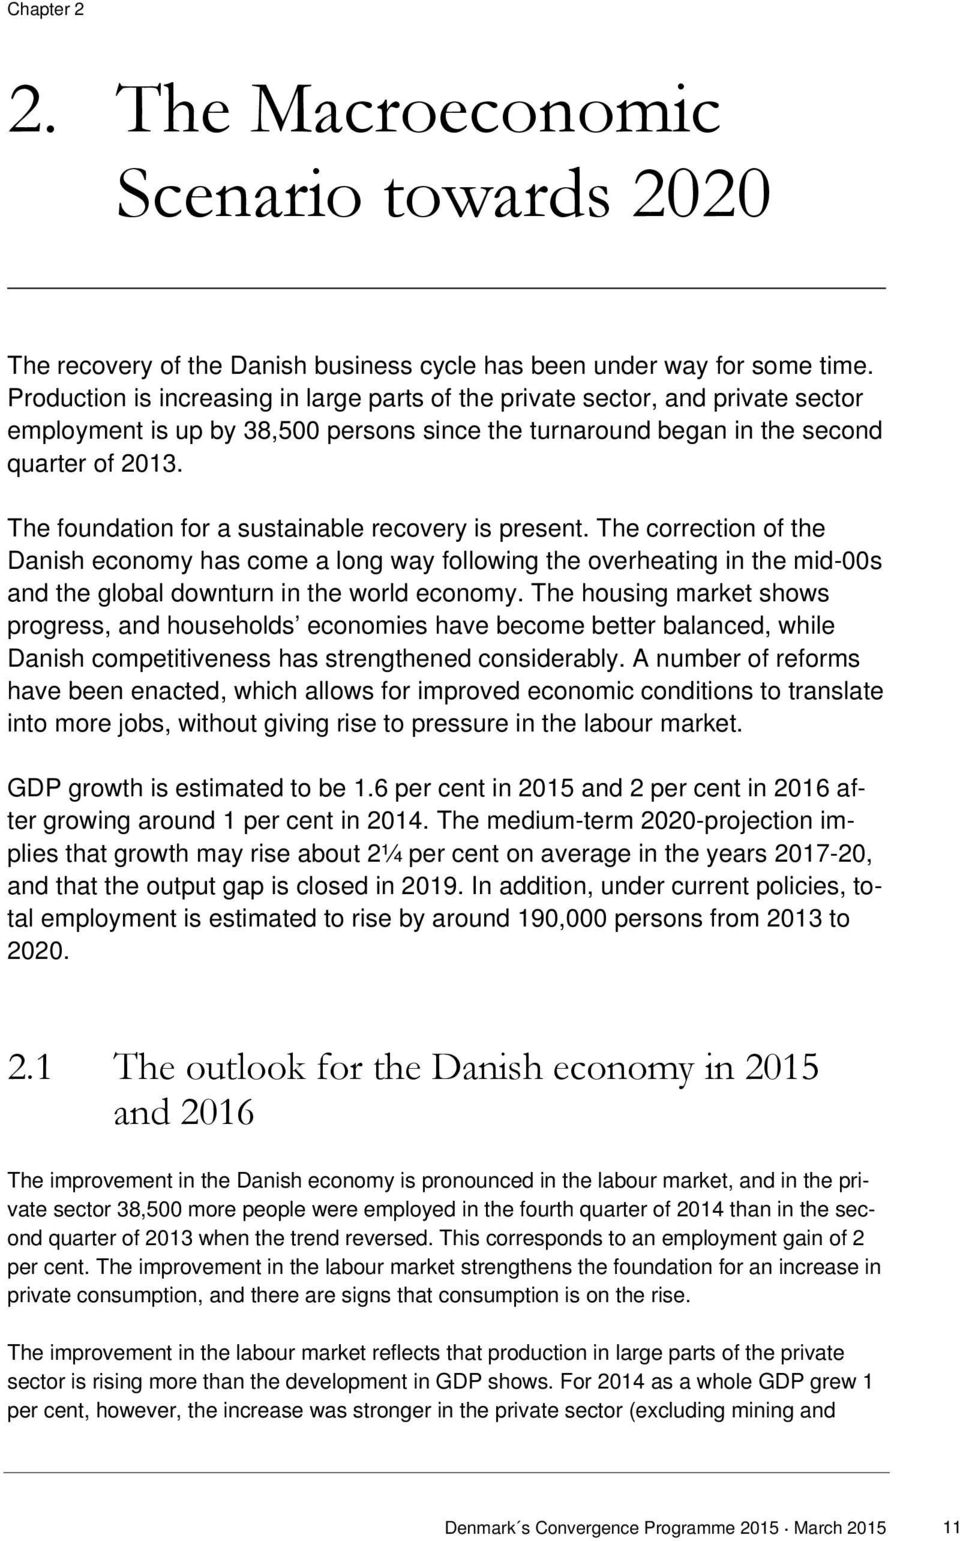 The foundation for a sustainable recovery is present. The correction of the Danish economy has come a long way following the overheating in the mid-00s and the global downturn in the world economy.